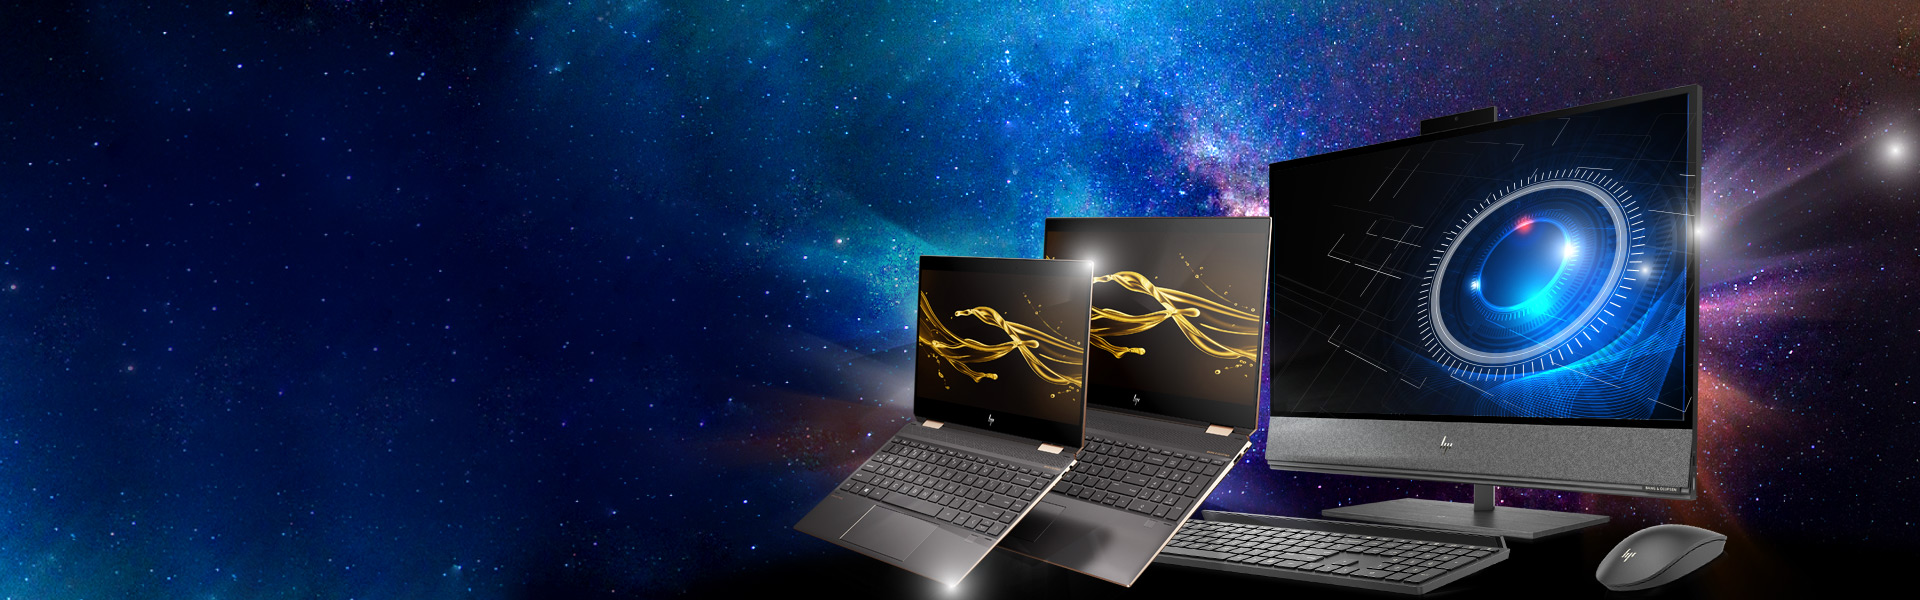 HP laptops and desktop all-in-one powered by Intel